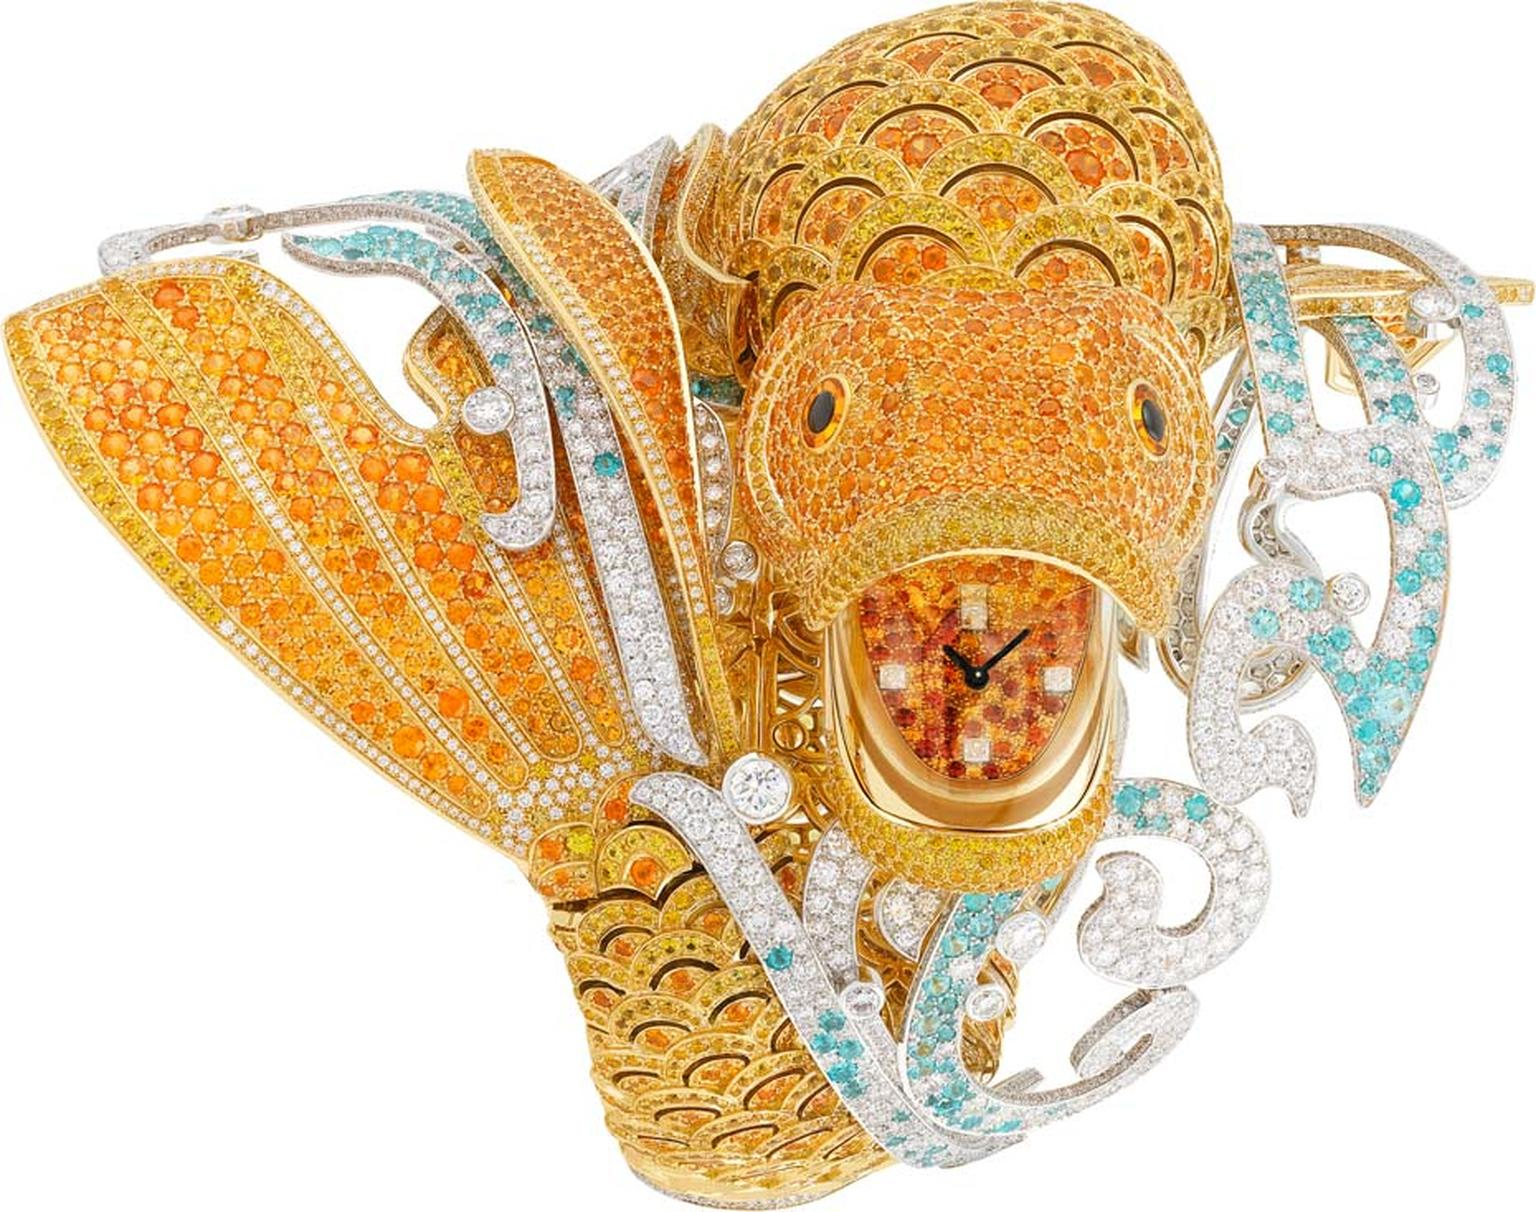 Van Cleef & Arpels Carpe Koi secret watch